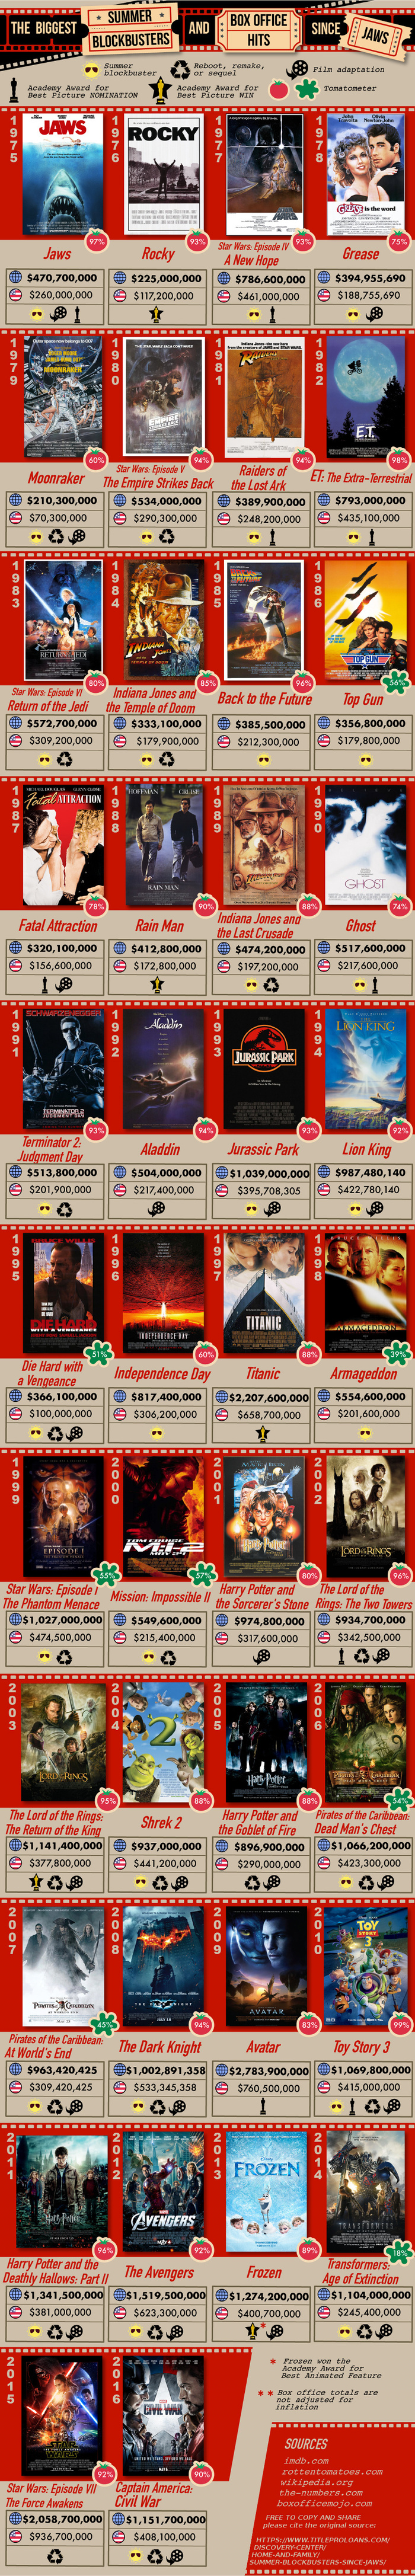 Top grossing movie of the year